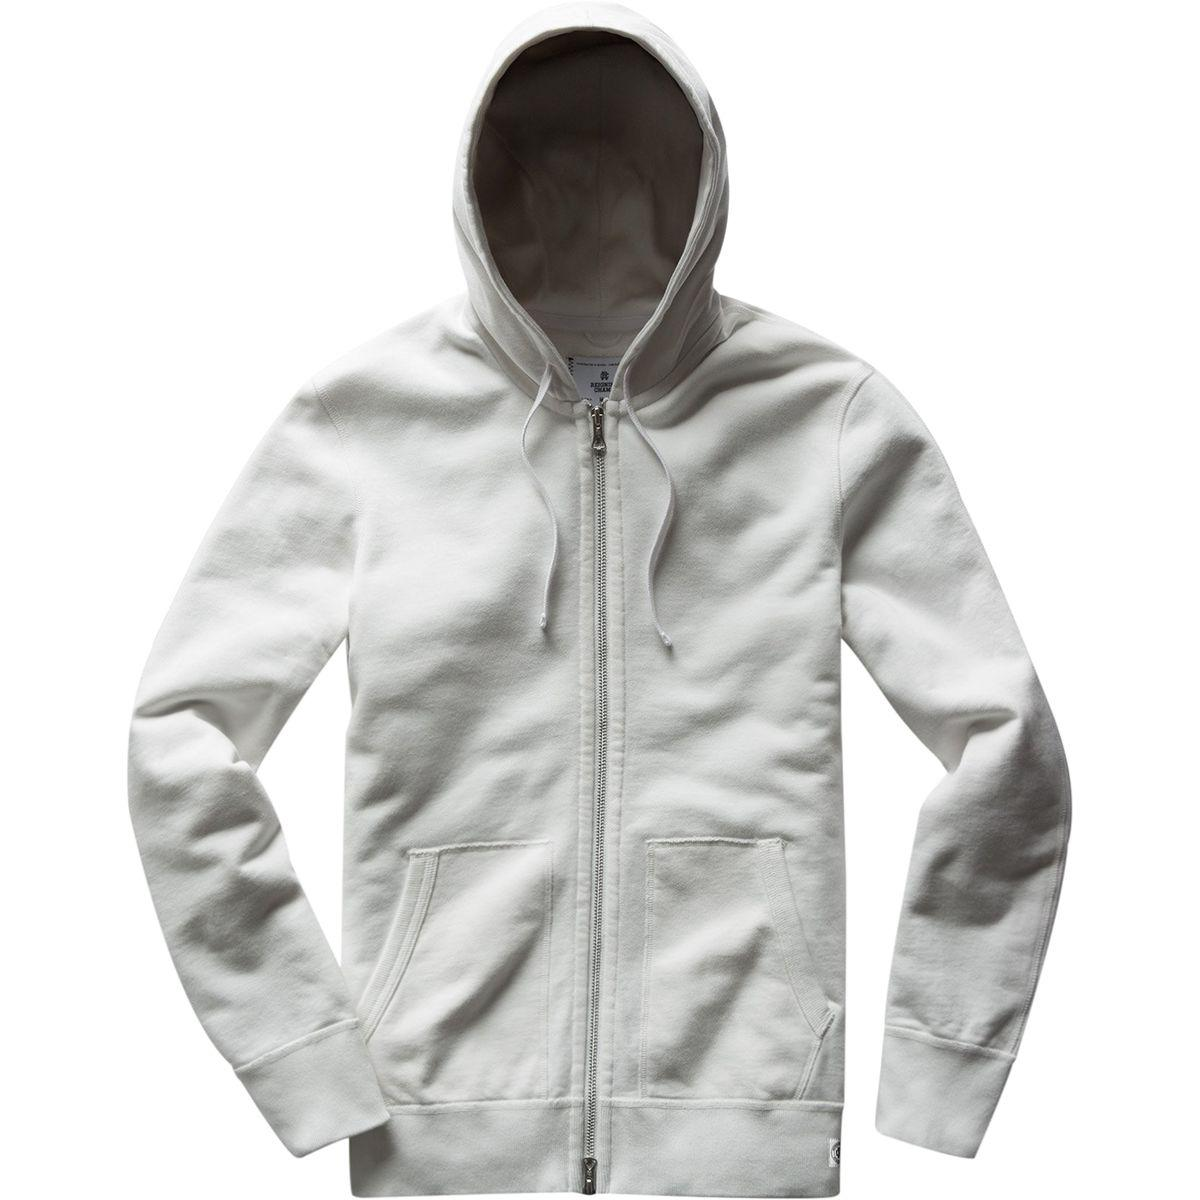 eaa0b8b261f Lyst - Reigning Champ Light Weight Full Zip Hoodie in Gray for Men ...